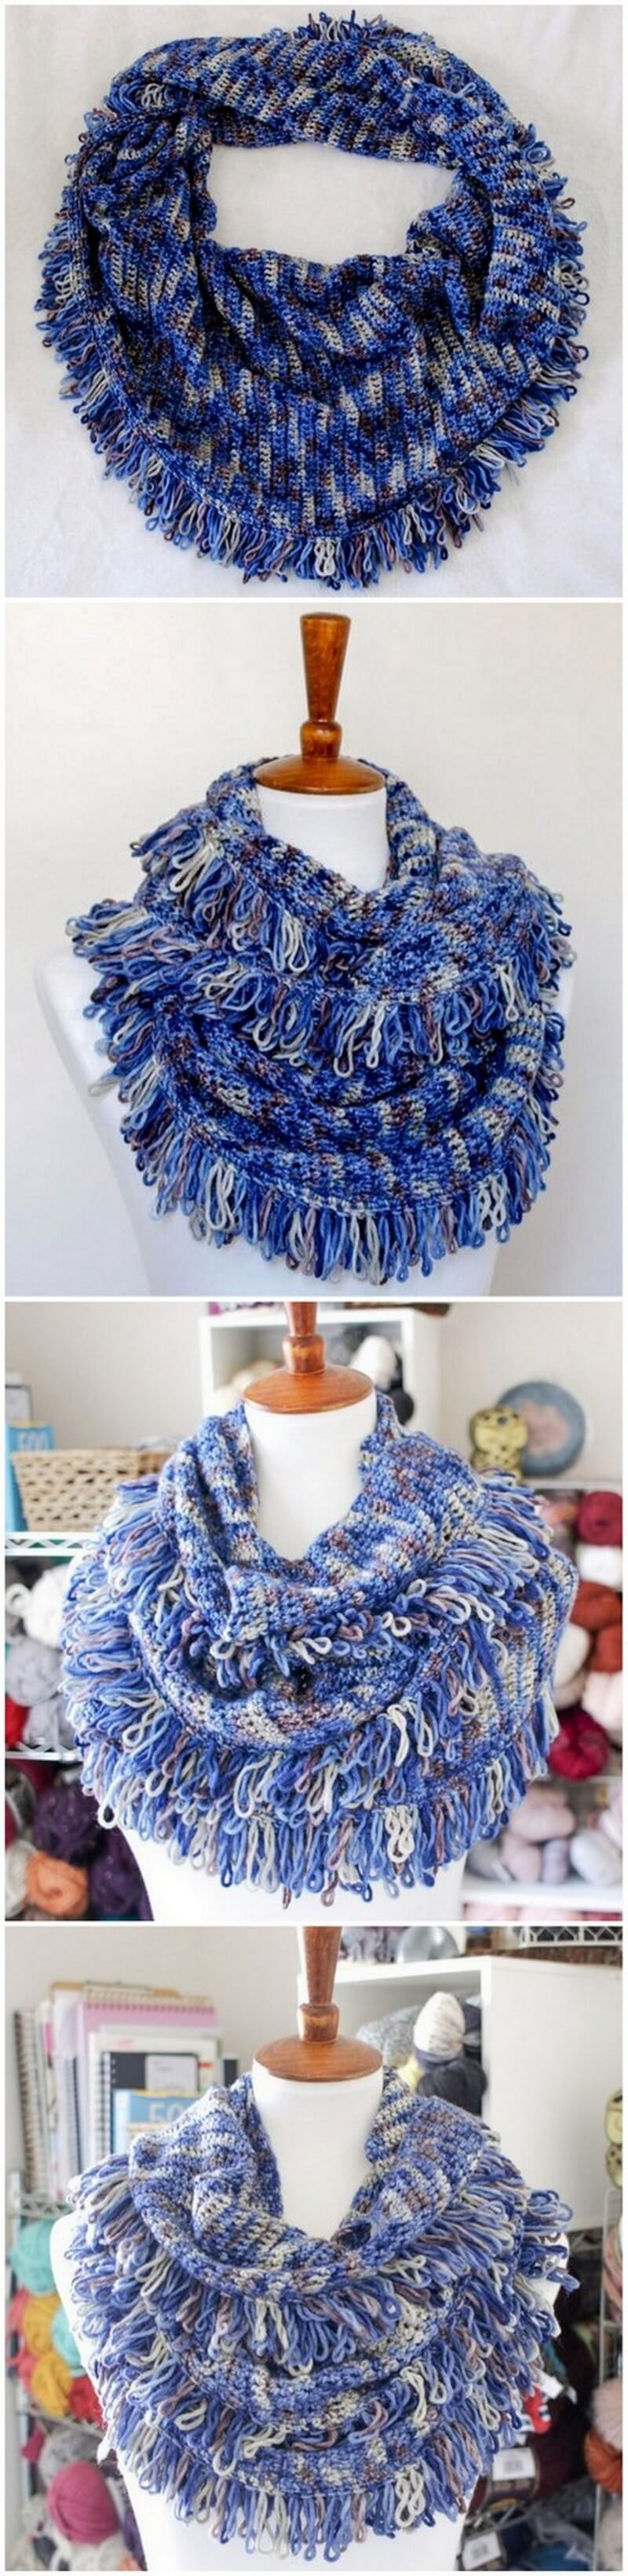 Easy Crochet Scarf Pattern (5)